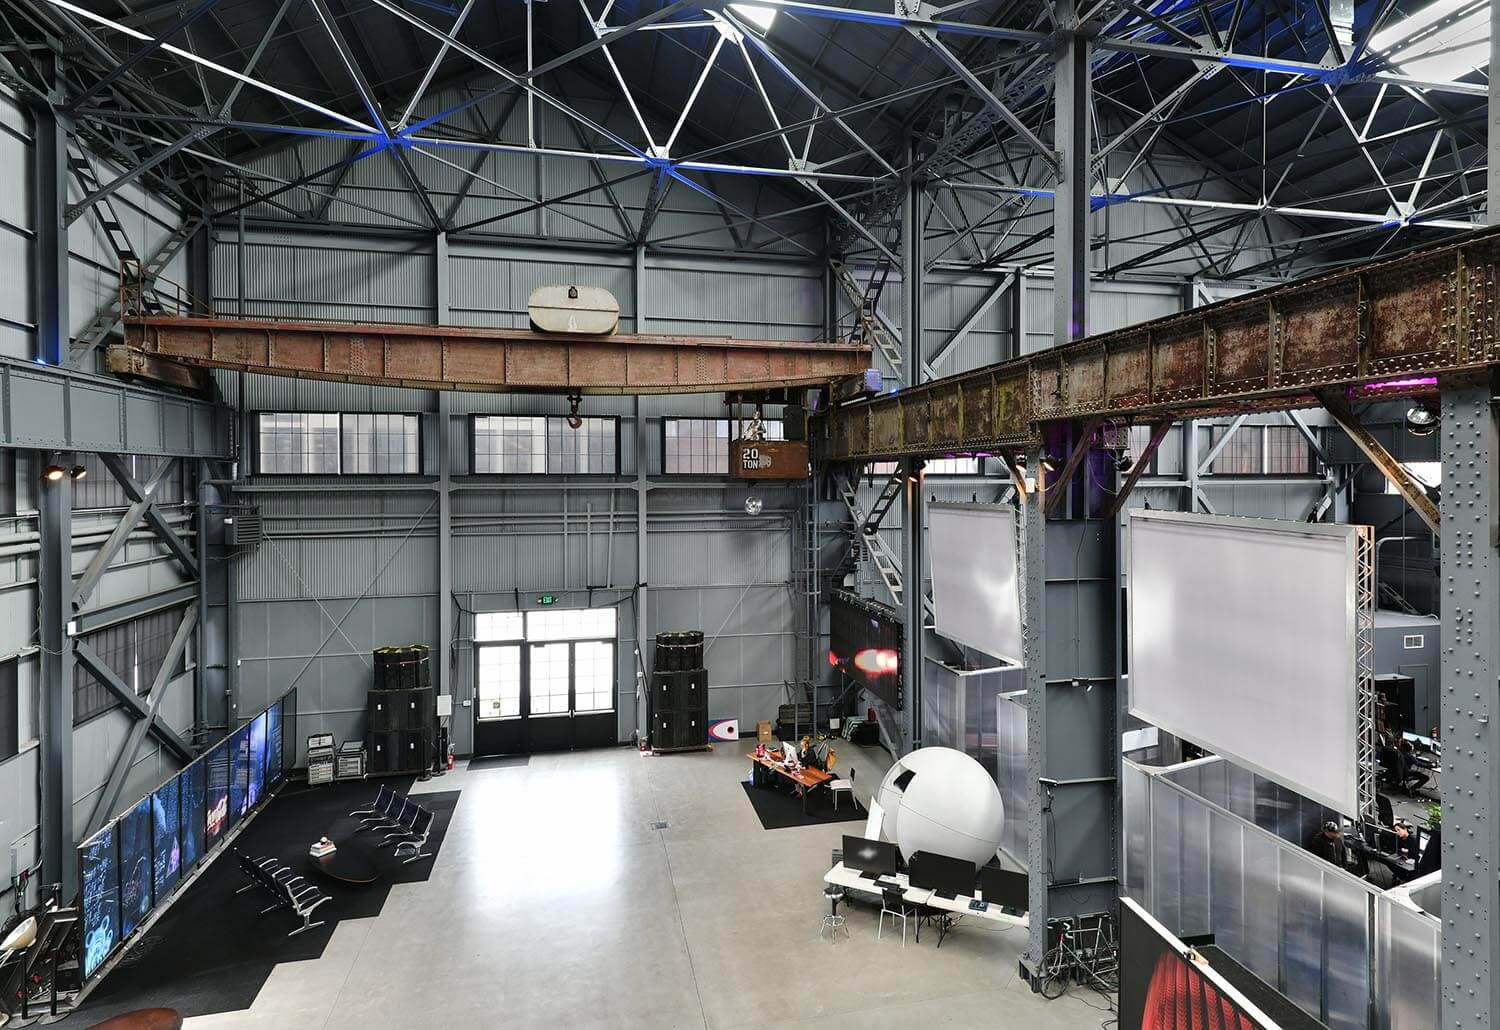 Interior view of spacious, open room at at Pier 70, Building 14 in San Francisco with metal walls and massive overhead crane